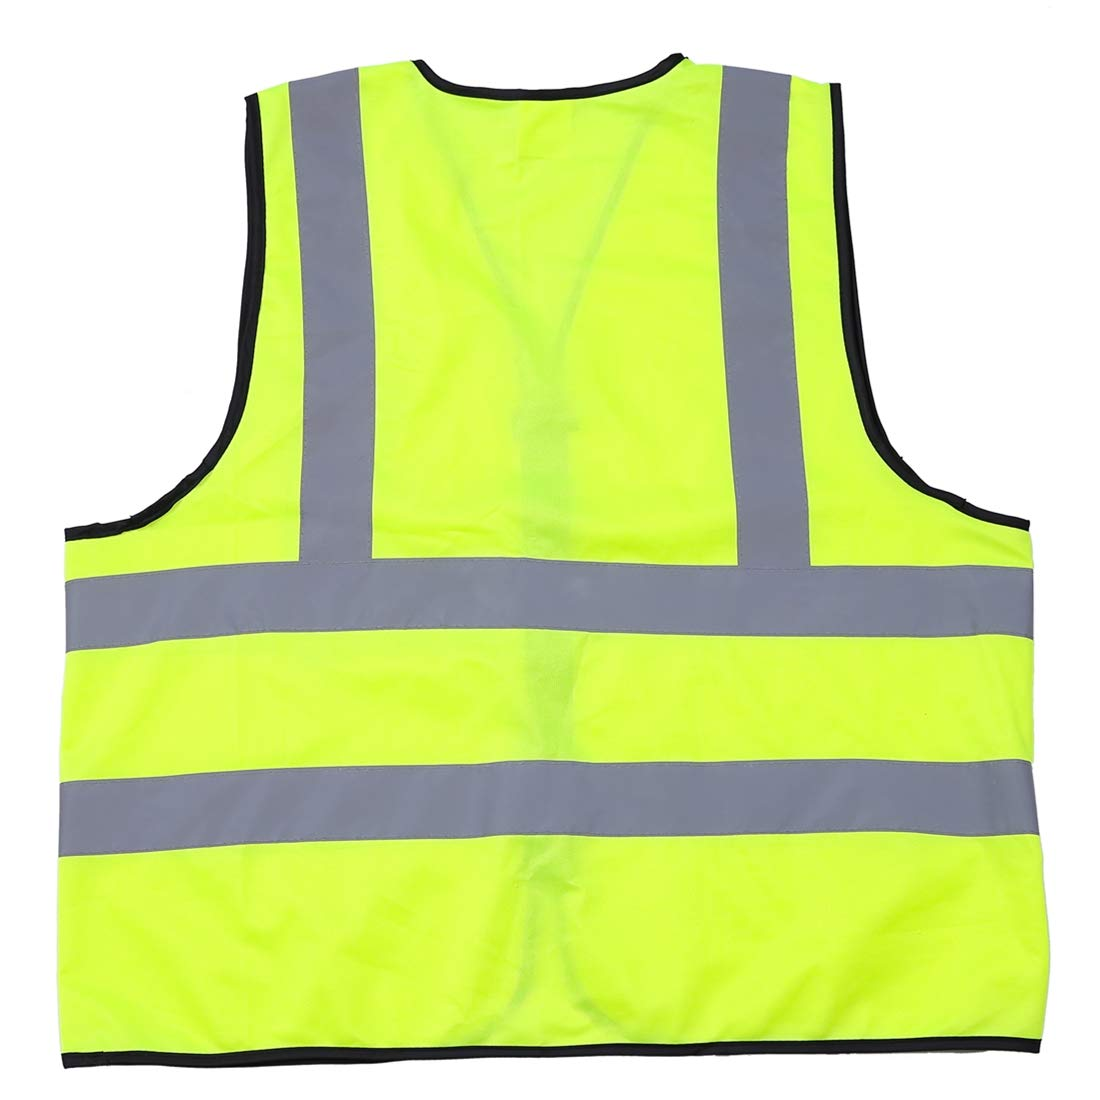 Bright Breathable Polyester fabric,EN-471 standard,360/°High Visibility ,no pockets Extra Large Neon Yellow IDOU High efficiency Safety Reflective Vest,Wide Reflective Silver Strip